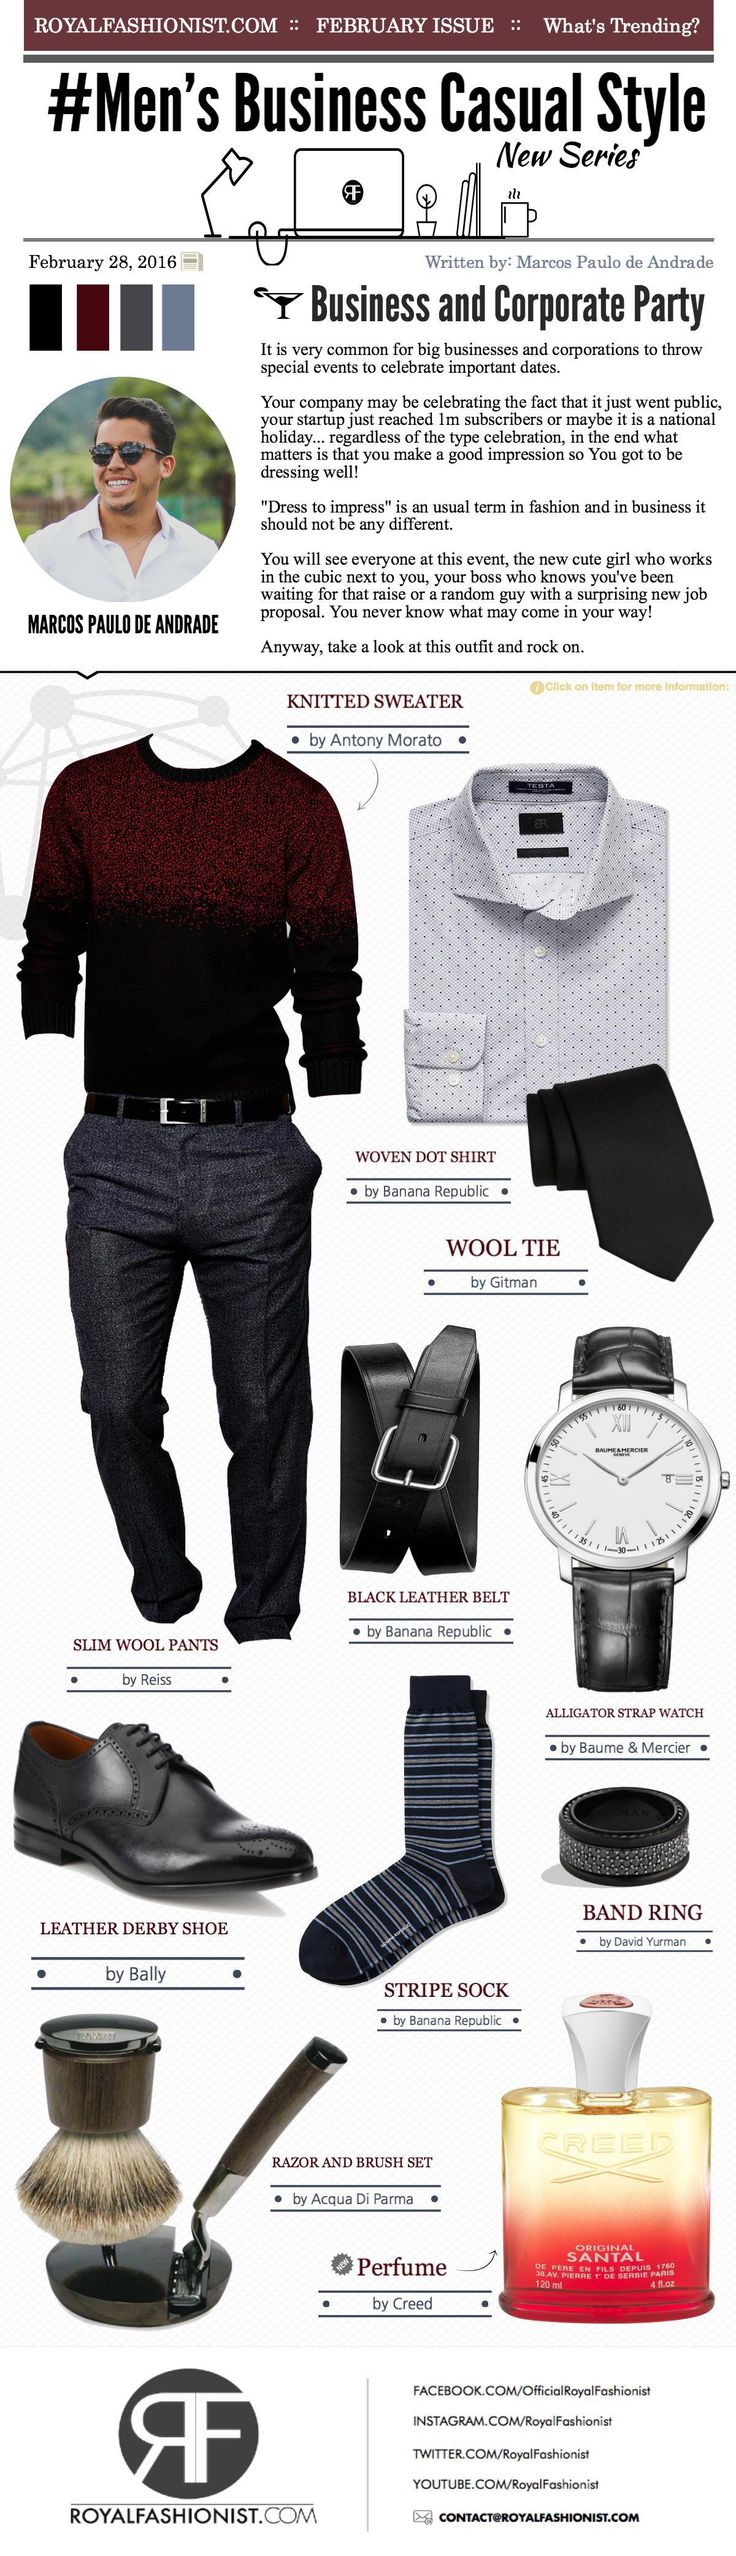 Men's Business Casual Style: Corporate Party Outfit   Royal Fashionist